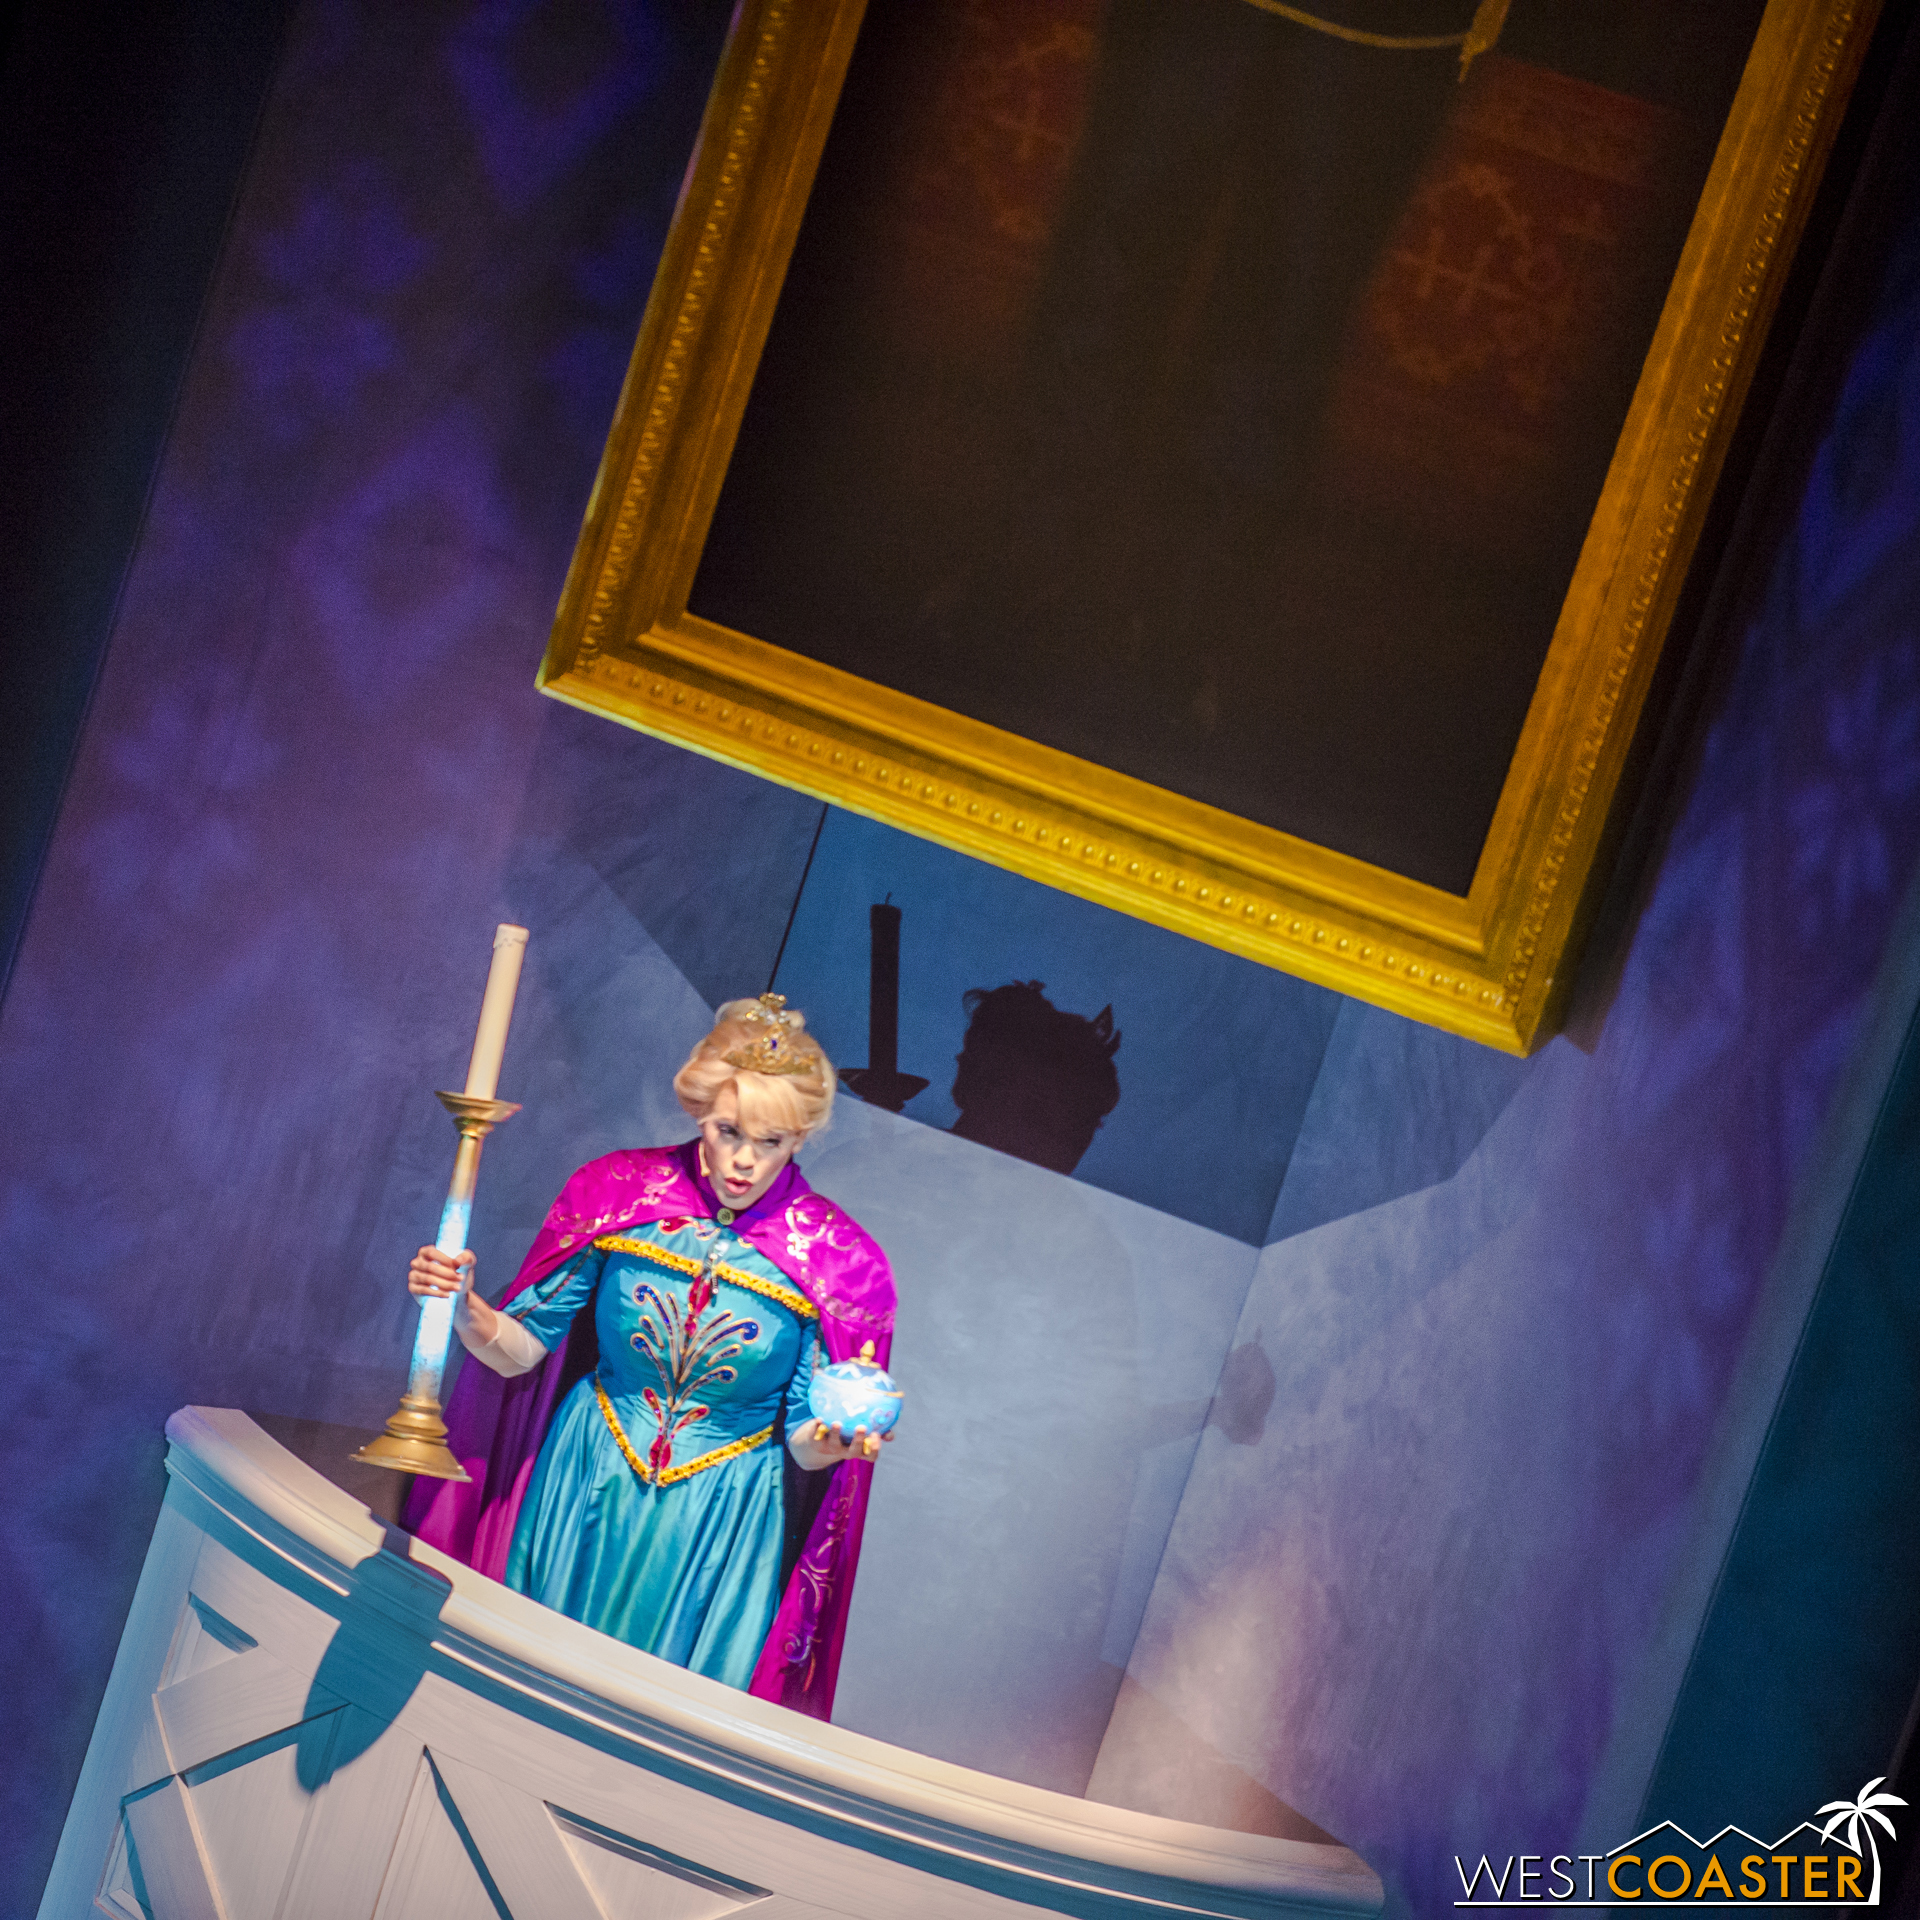 But the evil Elsa arrives and shows that she, too, has changed, by revealing that she has mutilated the original Lumiere by cutting off both of his arms. She has also put Mrs. Potts in a deathly pall of eternal slumber.